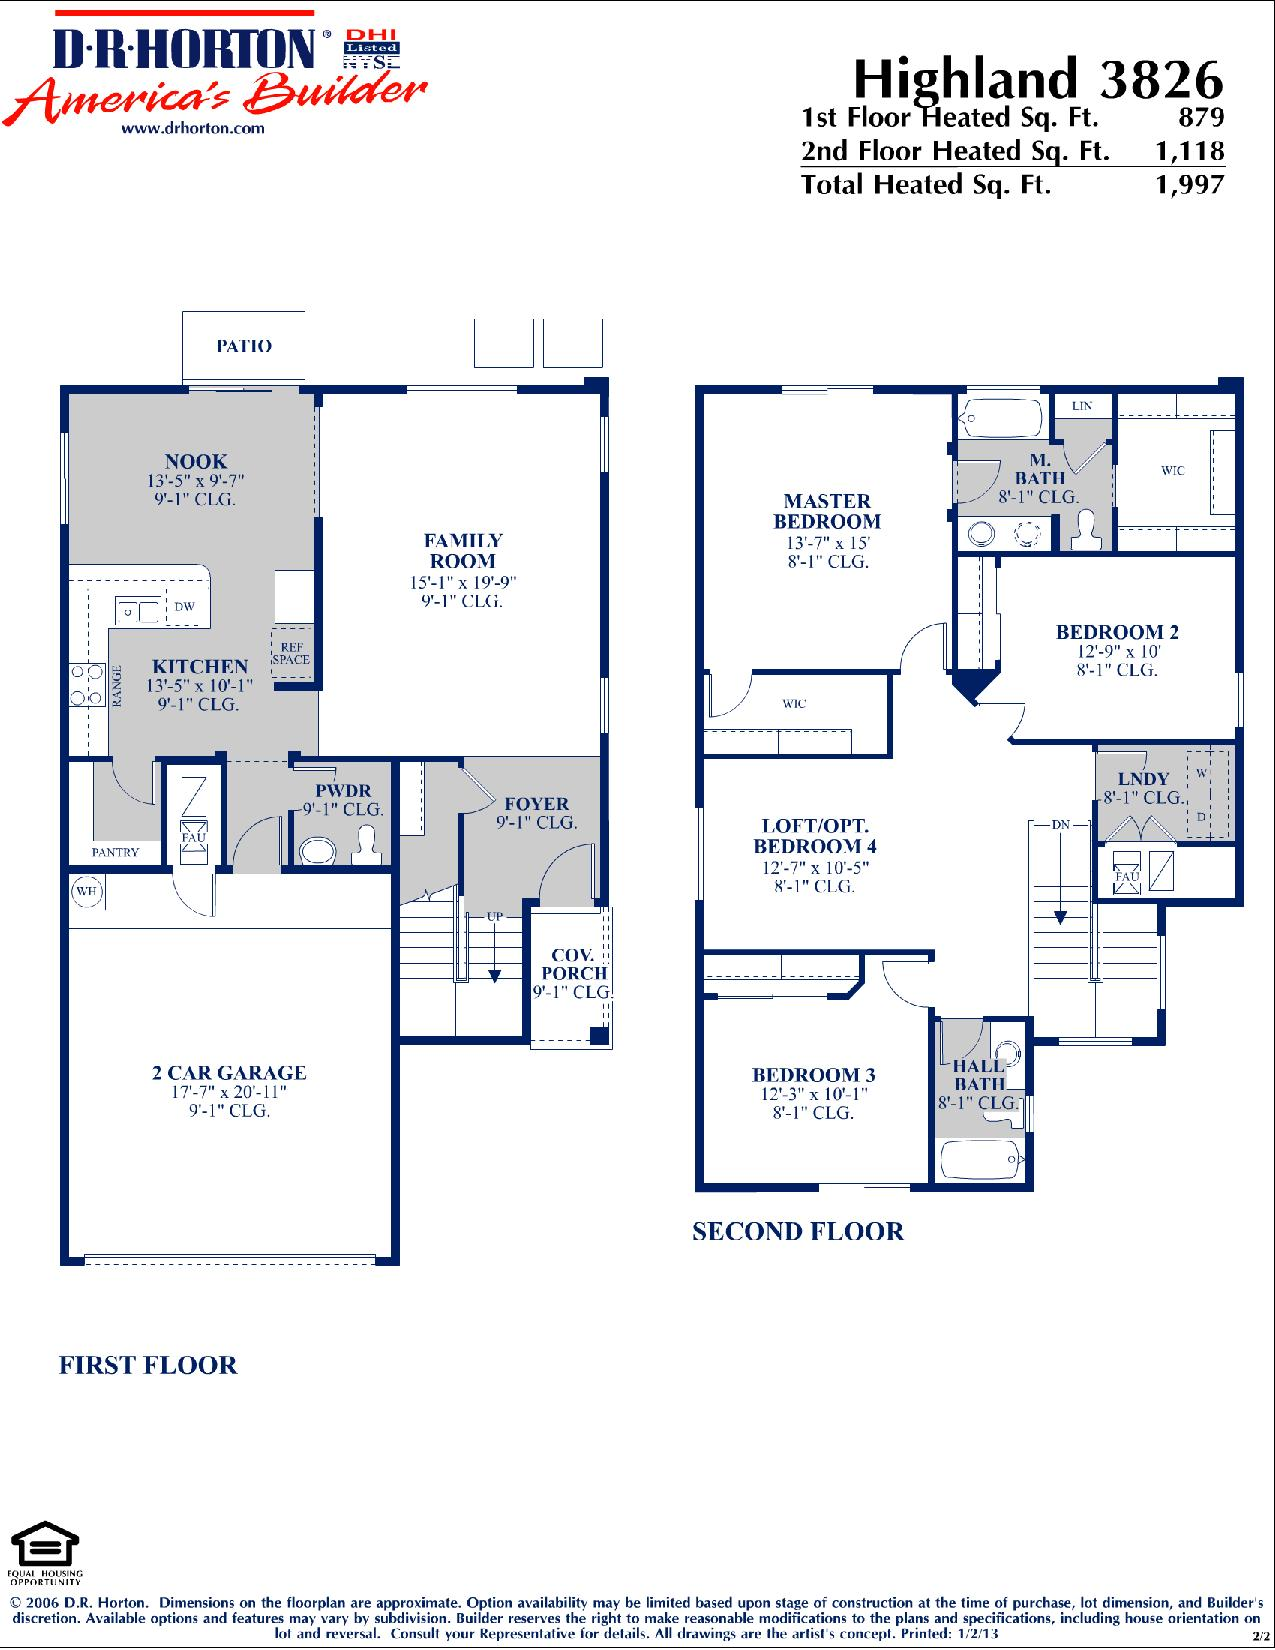 Dr Horton Highland Floor Plan